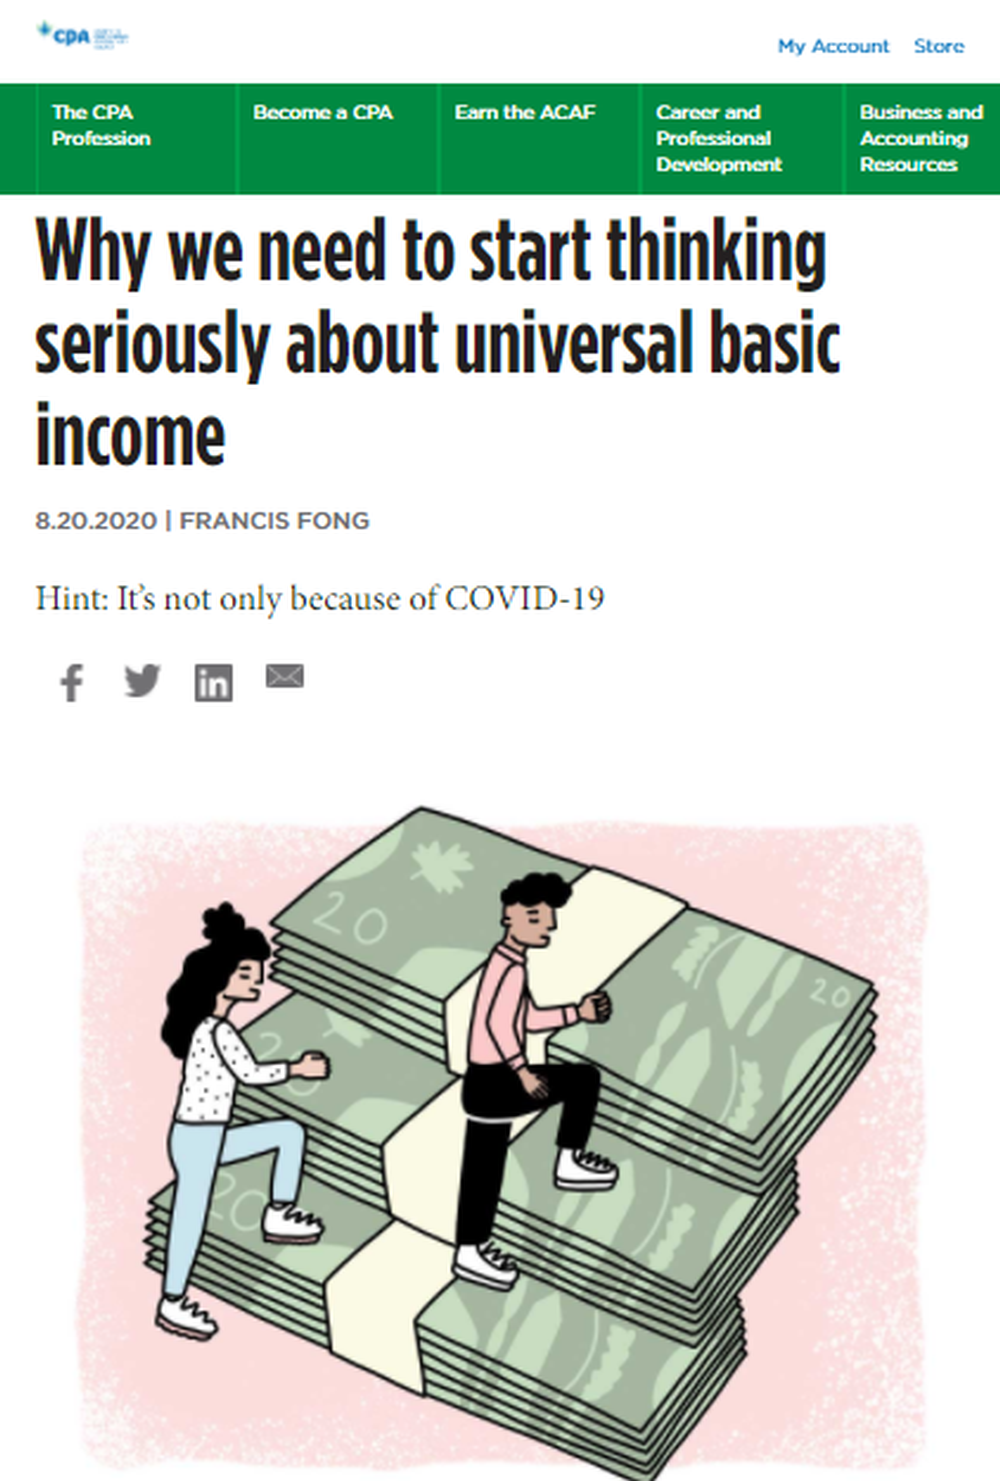 Why-we-need-to-start-thinking-seriously-about-universal-basic-income.png